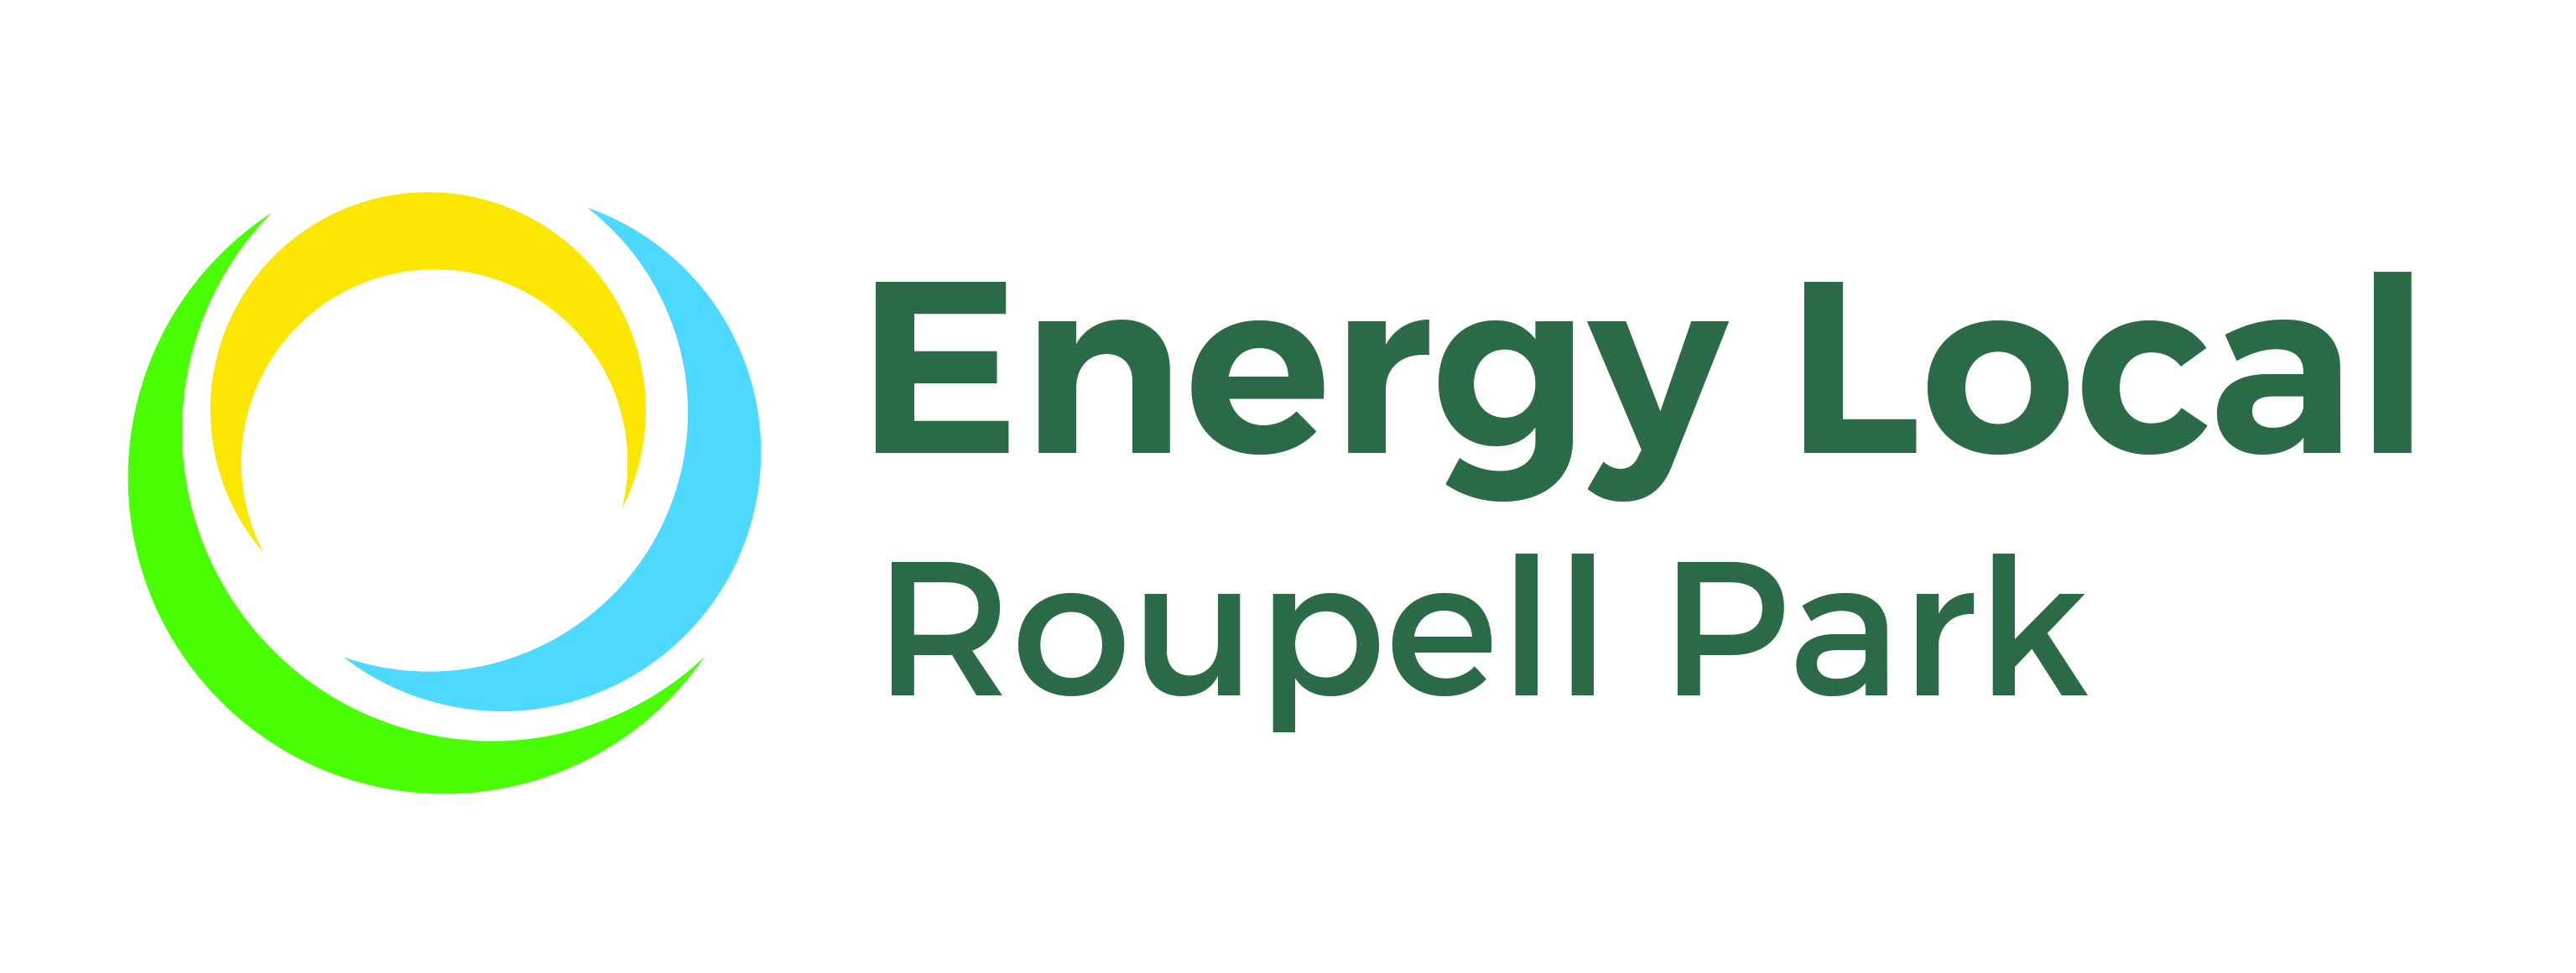 Energy Local Roupell Park Logo